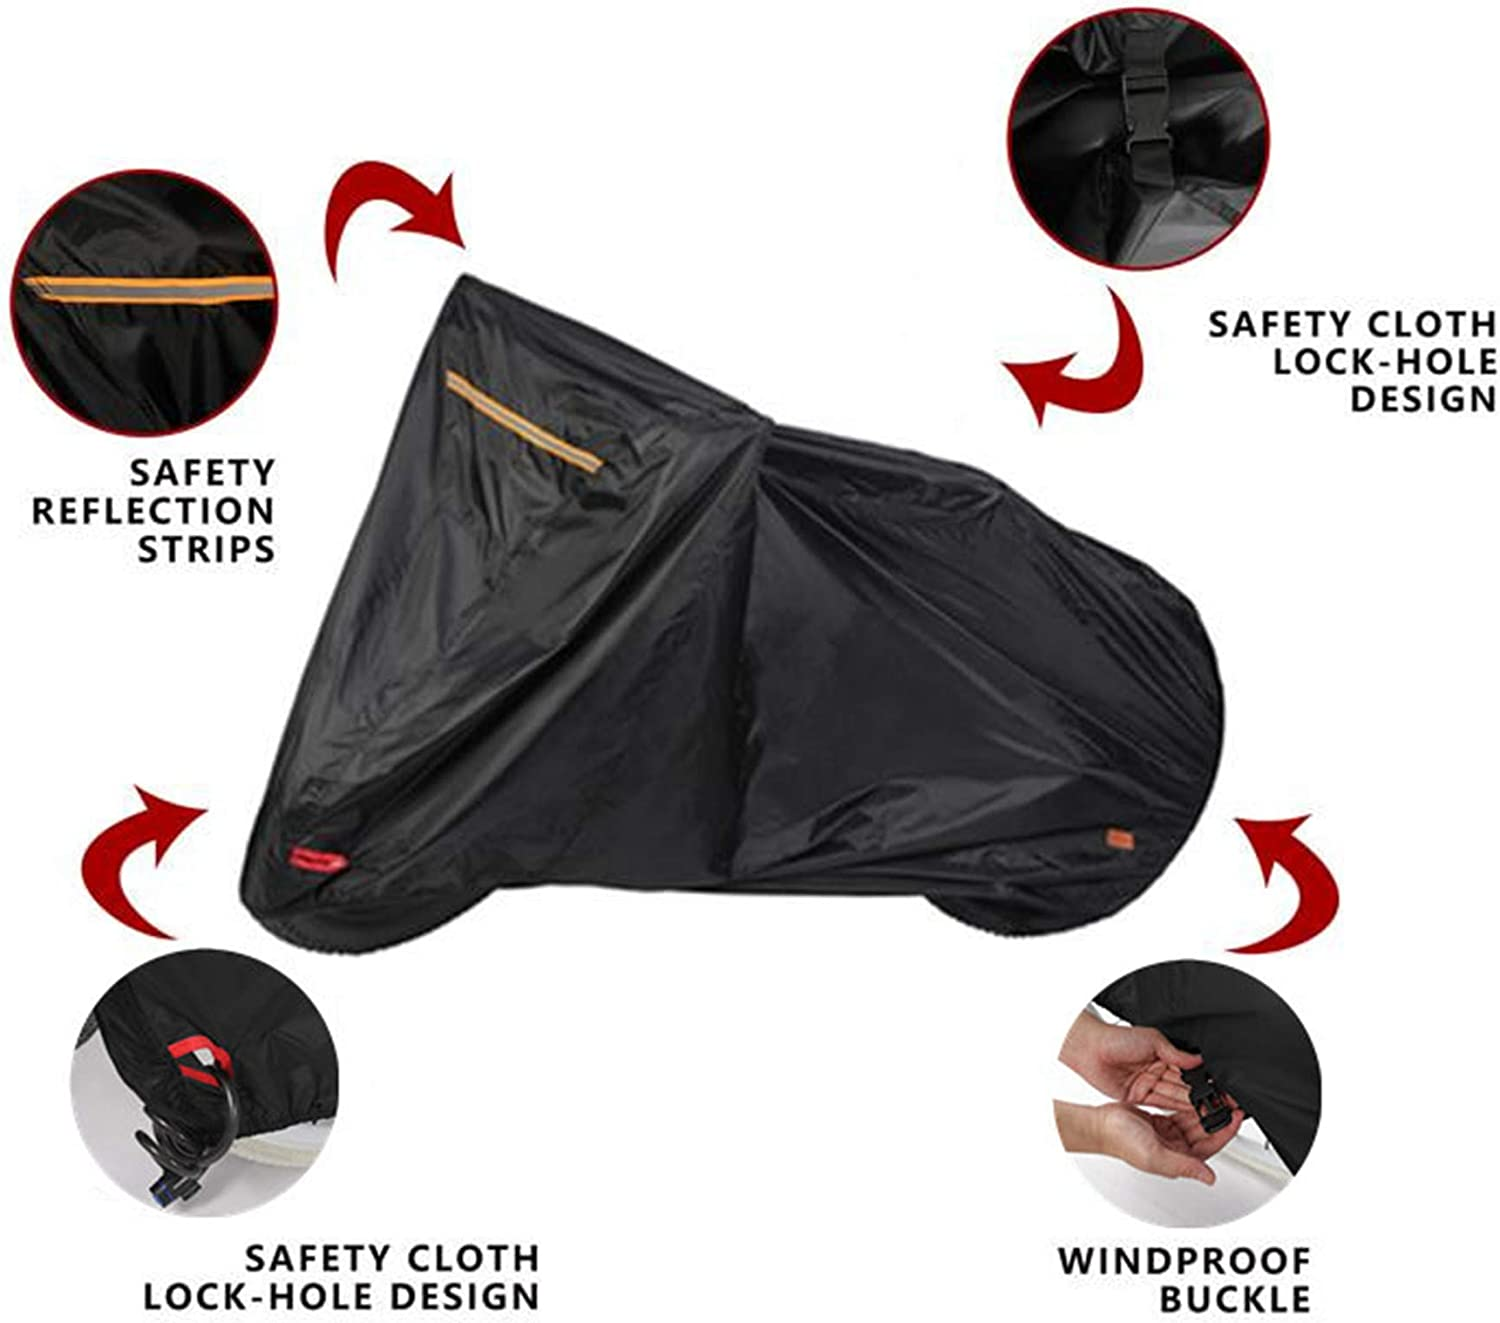 MORNYRAY Bike Cover Outdoor Waterproof All Weather Rain Sun UV Dust Wind Proof Bicycle Cover for Mountain Road Electric Bikes with Lock Hole Storage Bag